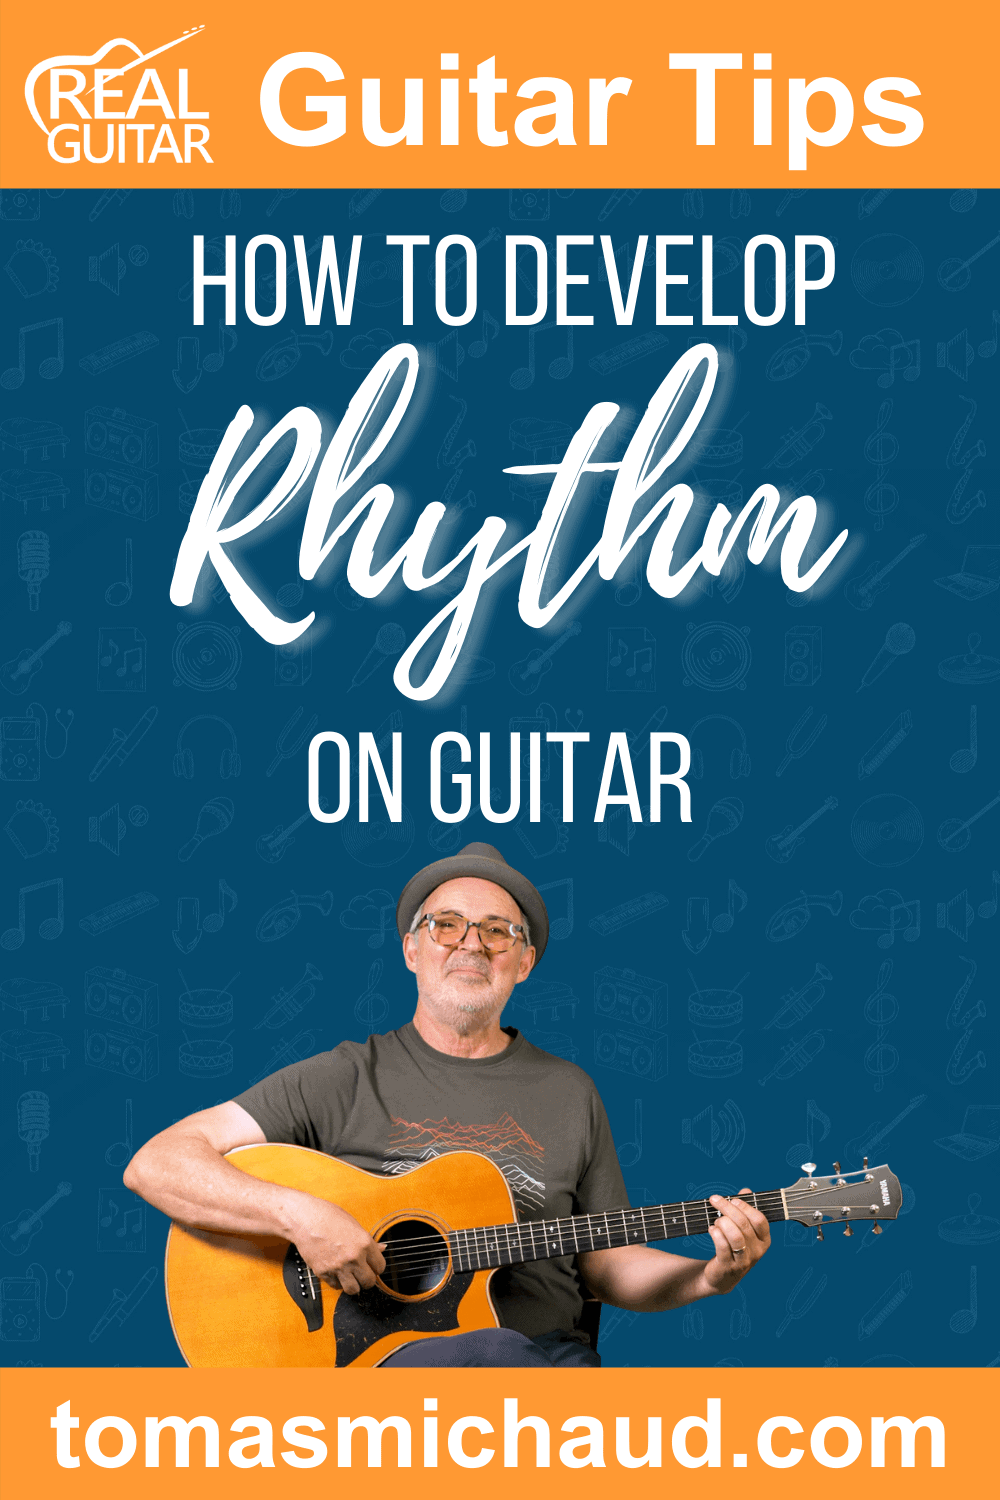 How To Develop Rhythm On Guitar